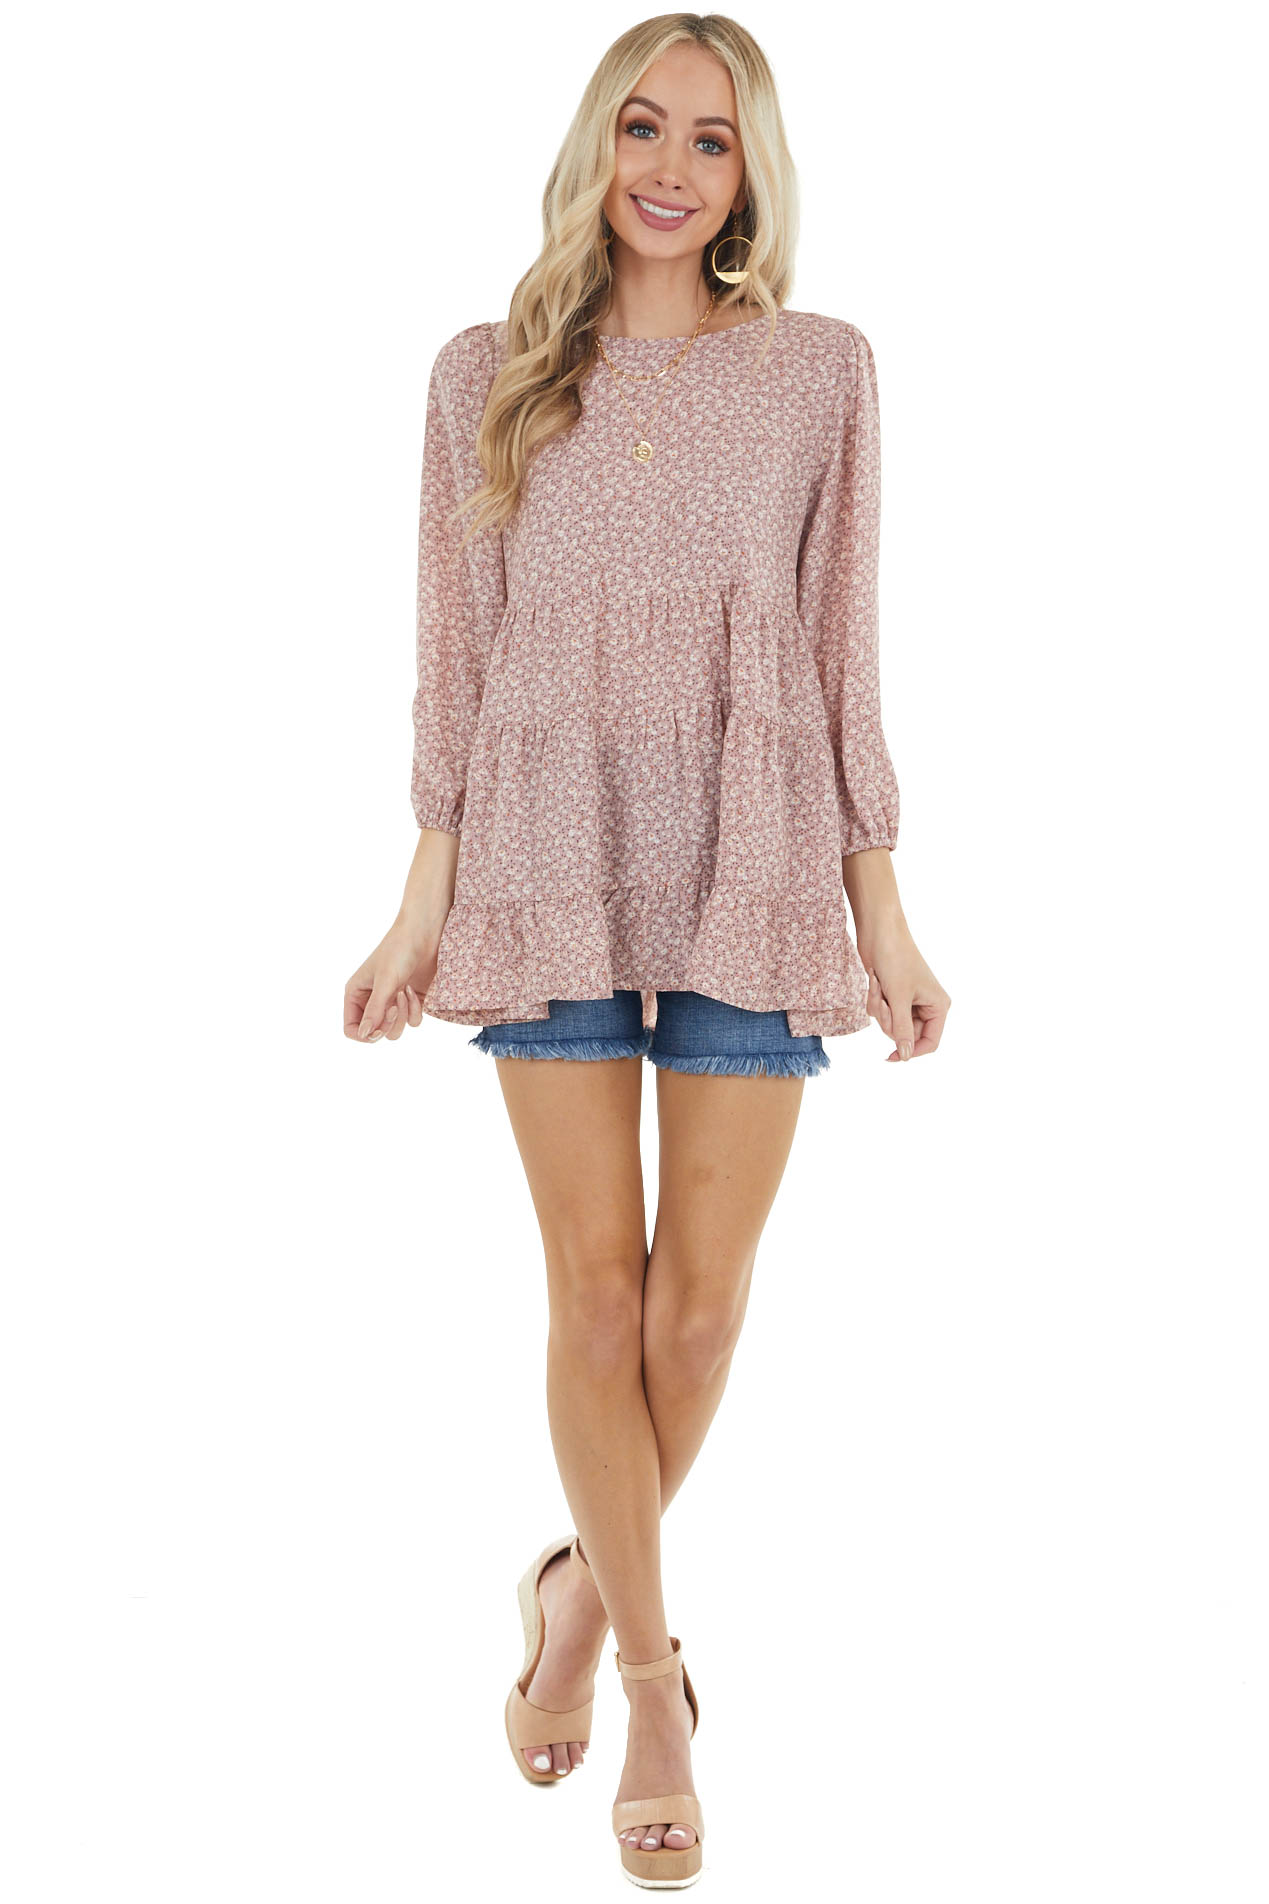 Dusty Rose Ditsy Floral Babydoll Tiered 3/4 Puff Sleeve Top